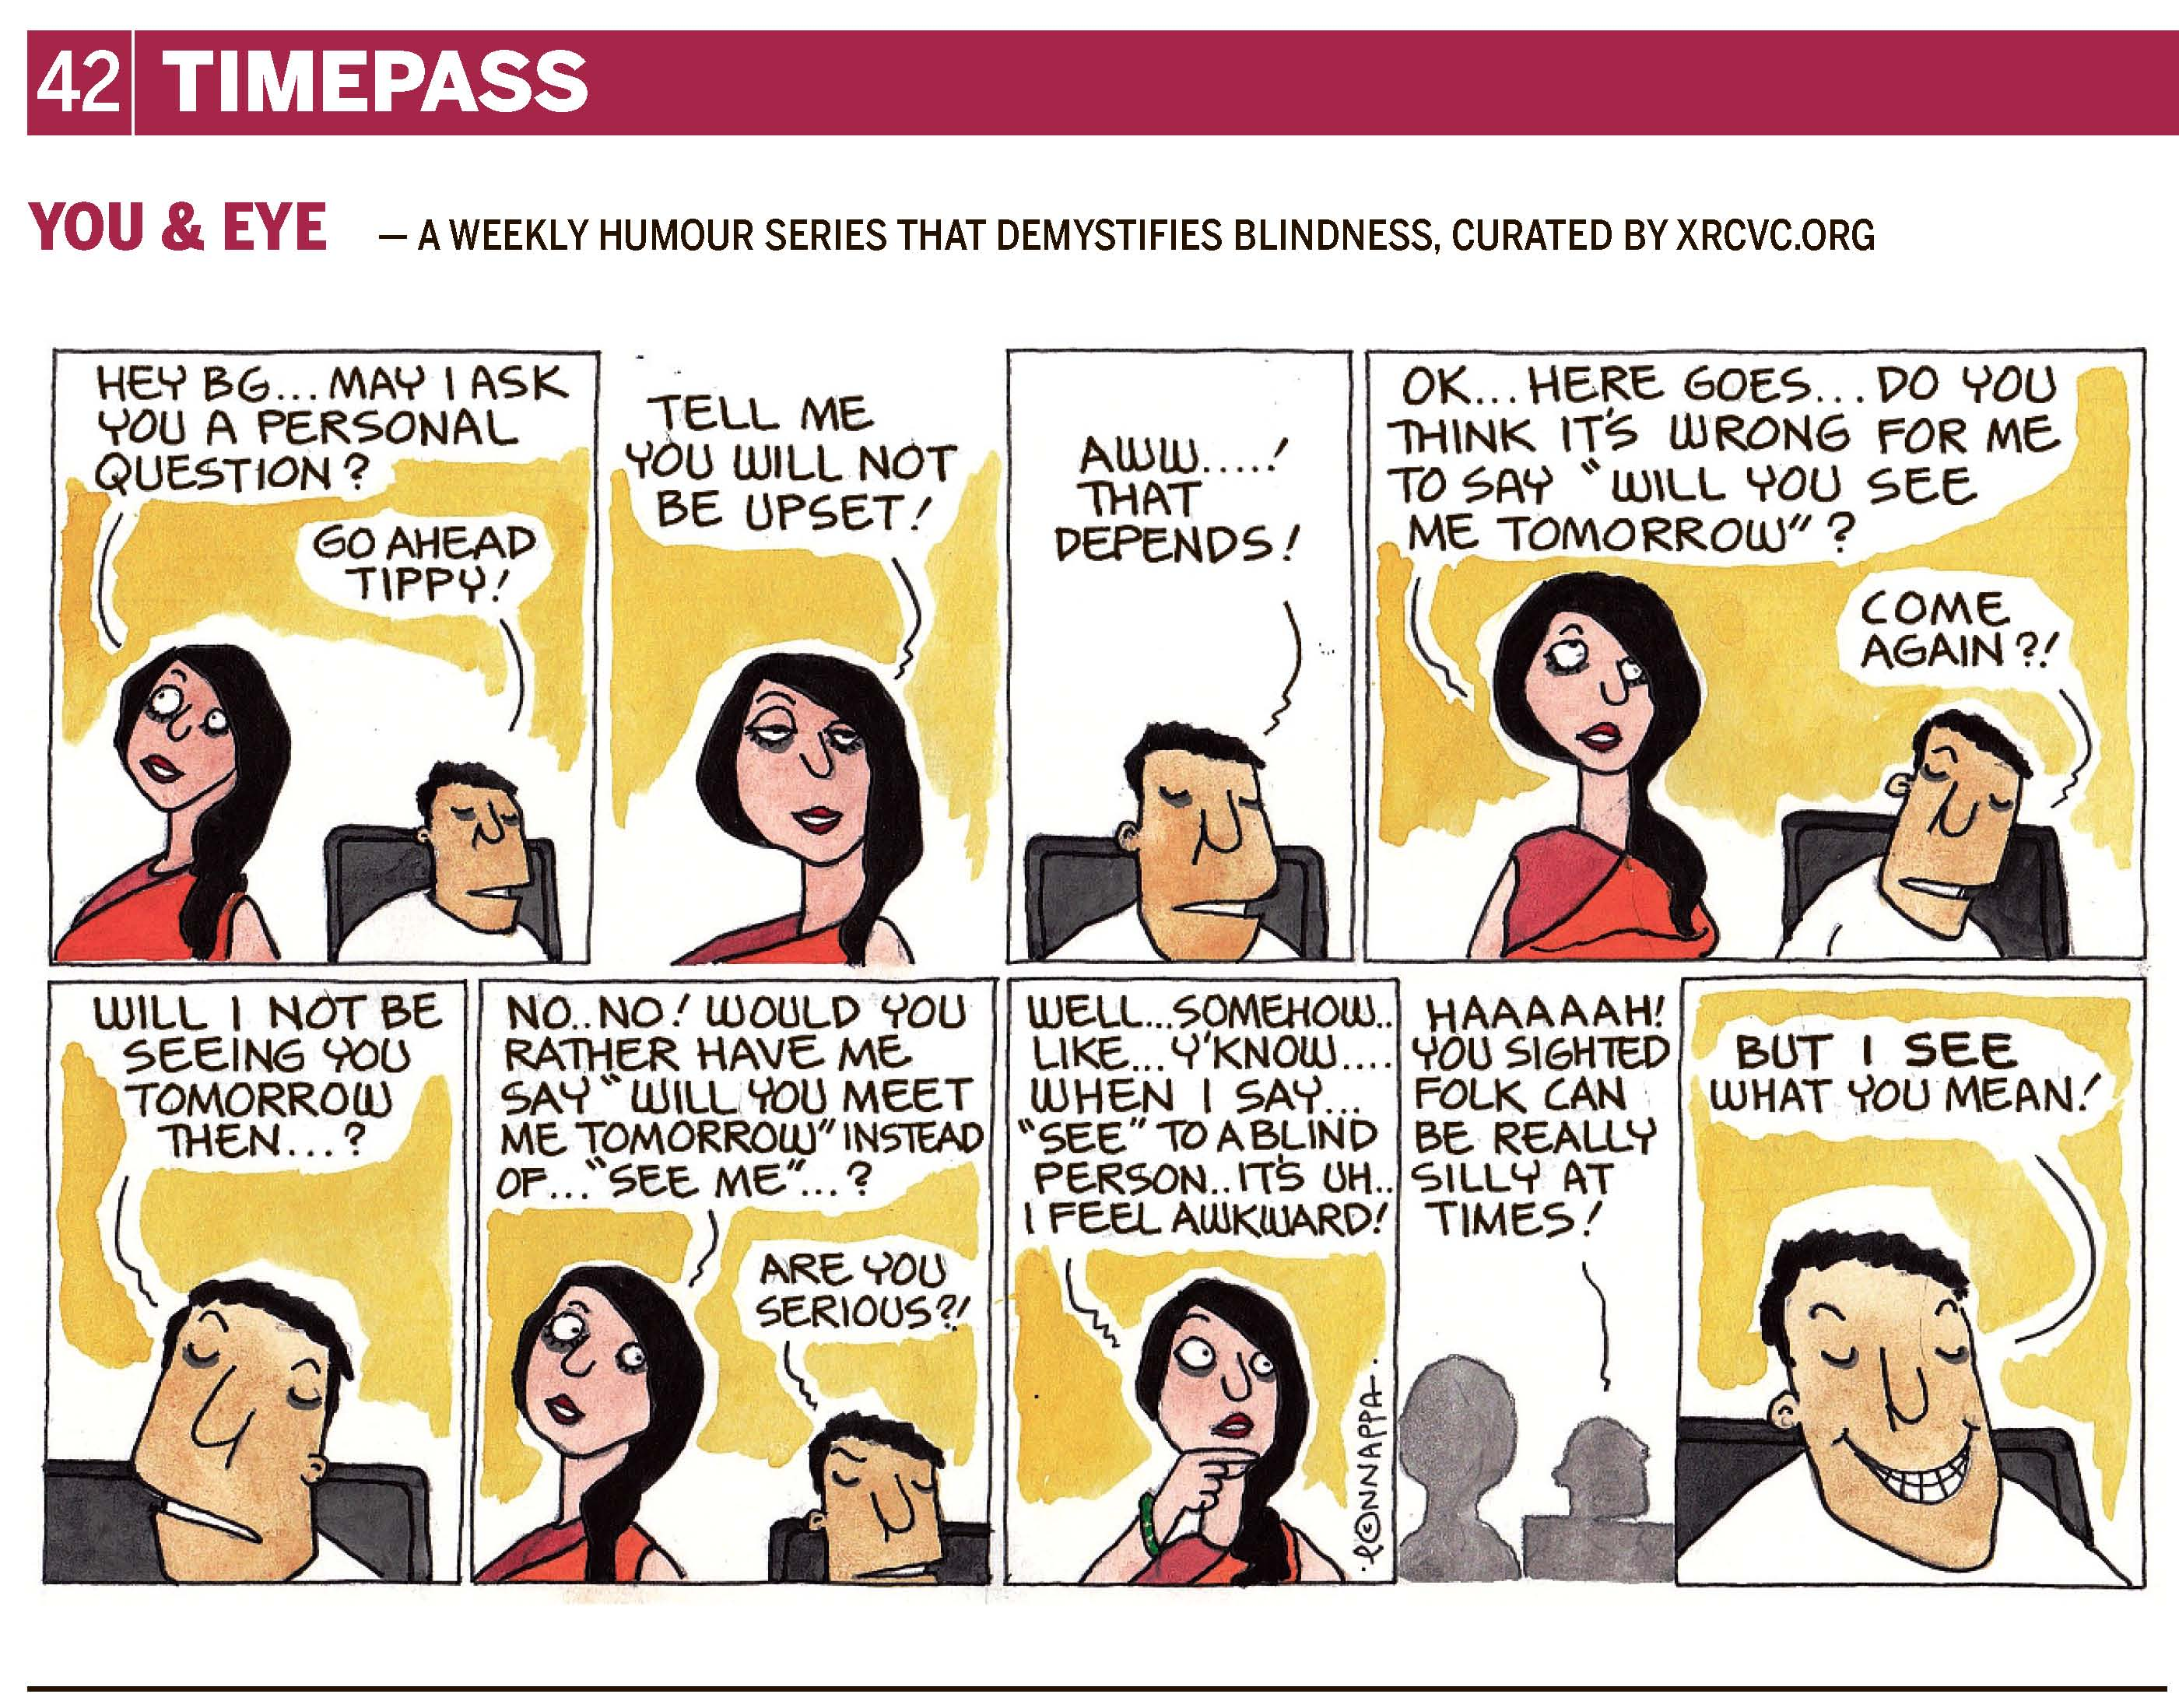 "42 | TIMEPASS YOU & EYE – A WEEKLY HUMOUR SERIES THAT DEMYSTIFIES BLINDNESS, CURATED BY XRCVC.ORG Image description: A cartoon strip with 9 frames… Frame 1: (The visually impaired man – BG – sitting on a chair, while his friend – Tippy – stands close by looking upwards as she wonders) Tippy: Hey BG… may I ask you a personal question? BG: Go ahead, Tippy! Frame 2: (A close-up of Tippy) Tippy: Tell me you will not be upset! Frame 3: (A close-up of BG) BG: Aww…! That depends! Frame 4: (BG sitting on the chair and Tippy standing nearby) Tippy: OK… here goes… do you think it's wrong for me to say, ""Will you see me tomorrow""? BG: Come again?! Frame 5: (A close-up of BG) BG: Will I not be seeing you tomorrow then…? Frame 6: (BG still sitting on the chair; Tippy standing nearby looks towards BG from the corner of her eye) Tippy: No… No! Would you rather have me say, ""Will you meet me tomorrow?"" Instead of… ""see me""…? BG: Are you serious?! Frame 7: (A close-up of Tippy thinking, with her right hand on her chin) Tippy: Well… somehow… like… y'know… when I say ""see"" to a blind person… it's… uh… I feel awkward! Frame 8: (Silhouettes of Tippy and BG) BG: HAAAAAH! You sighted folk can be really silly at times! Frame 9: (A close-up of BG grinning from ear to ear) But I SEE what you mean! (Signed Ponnappa, in Frame 7)"